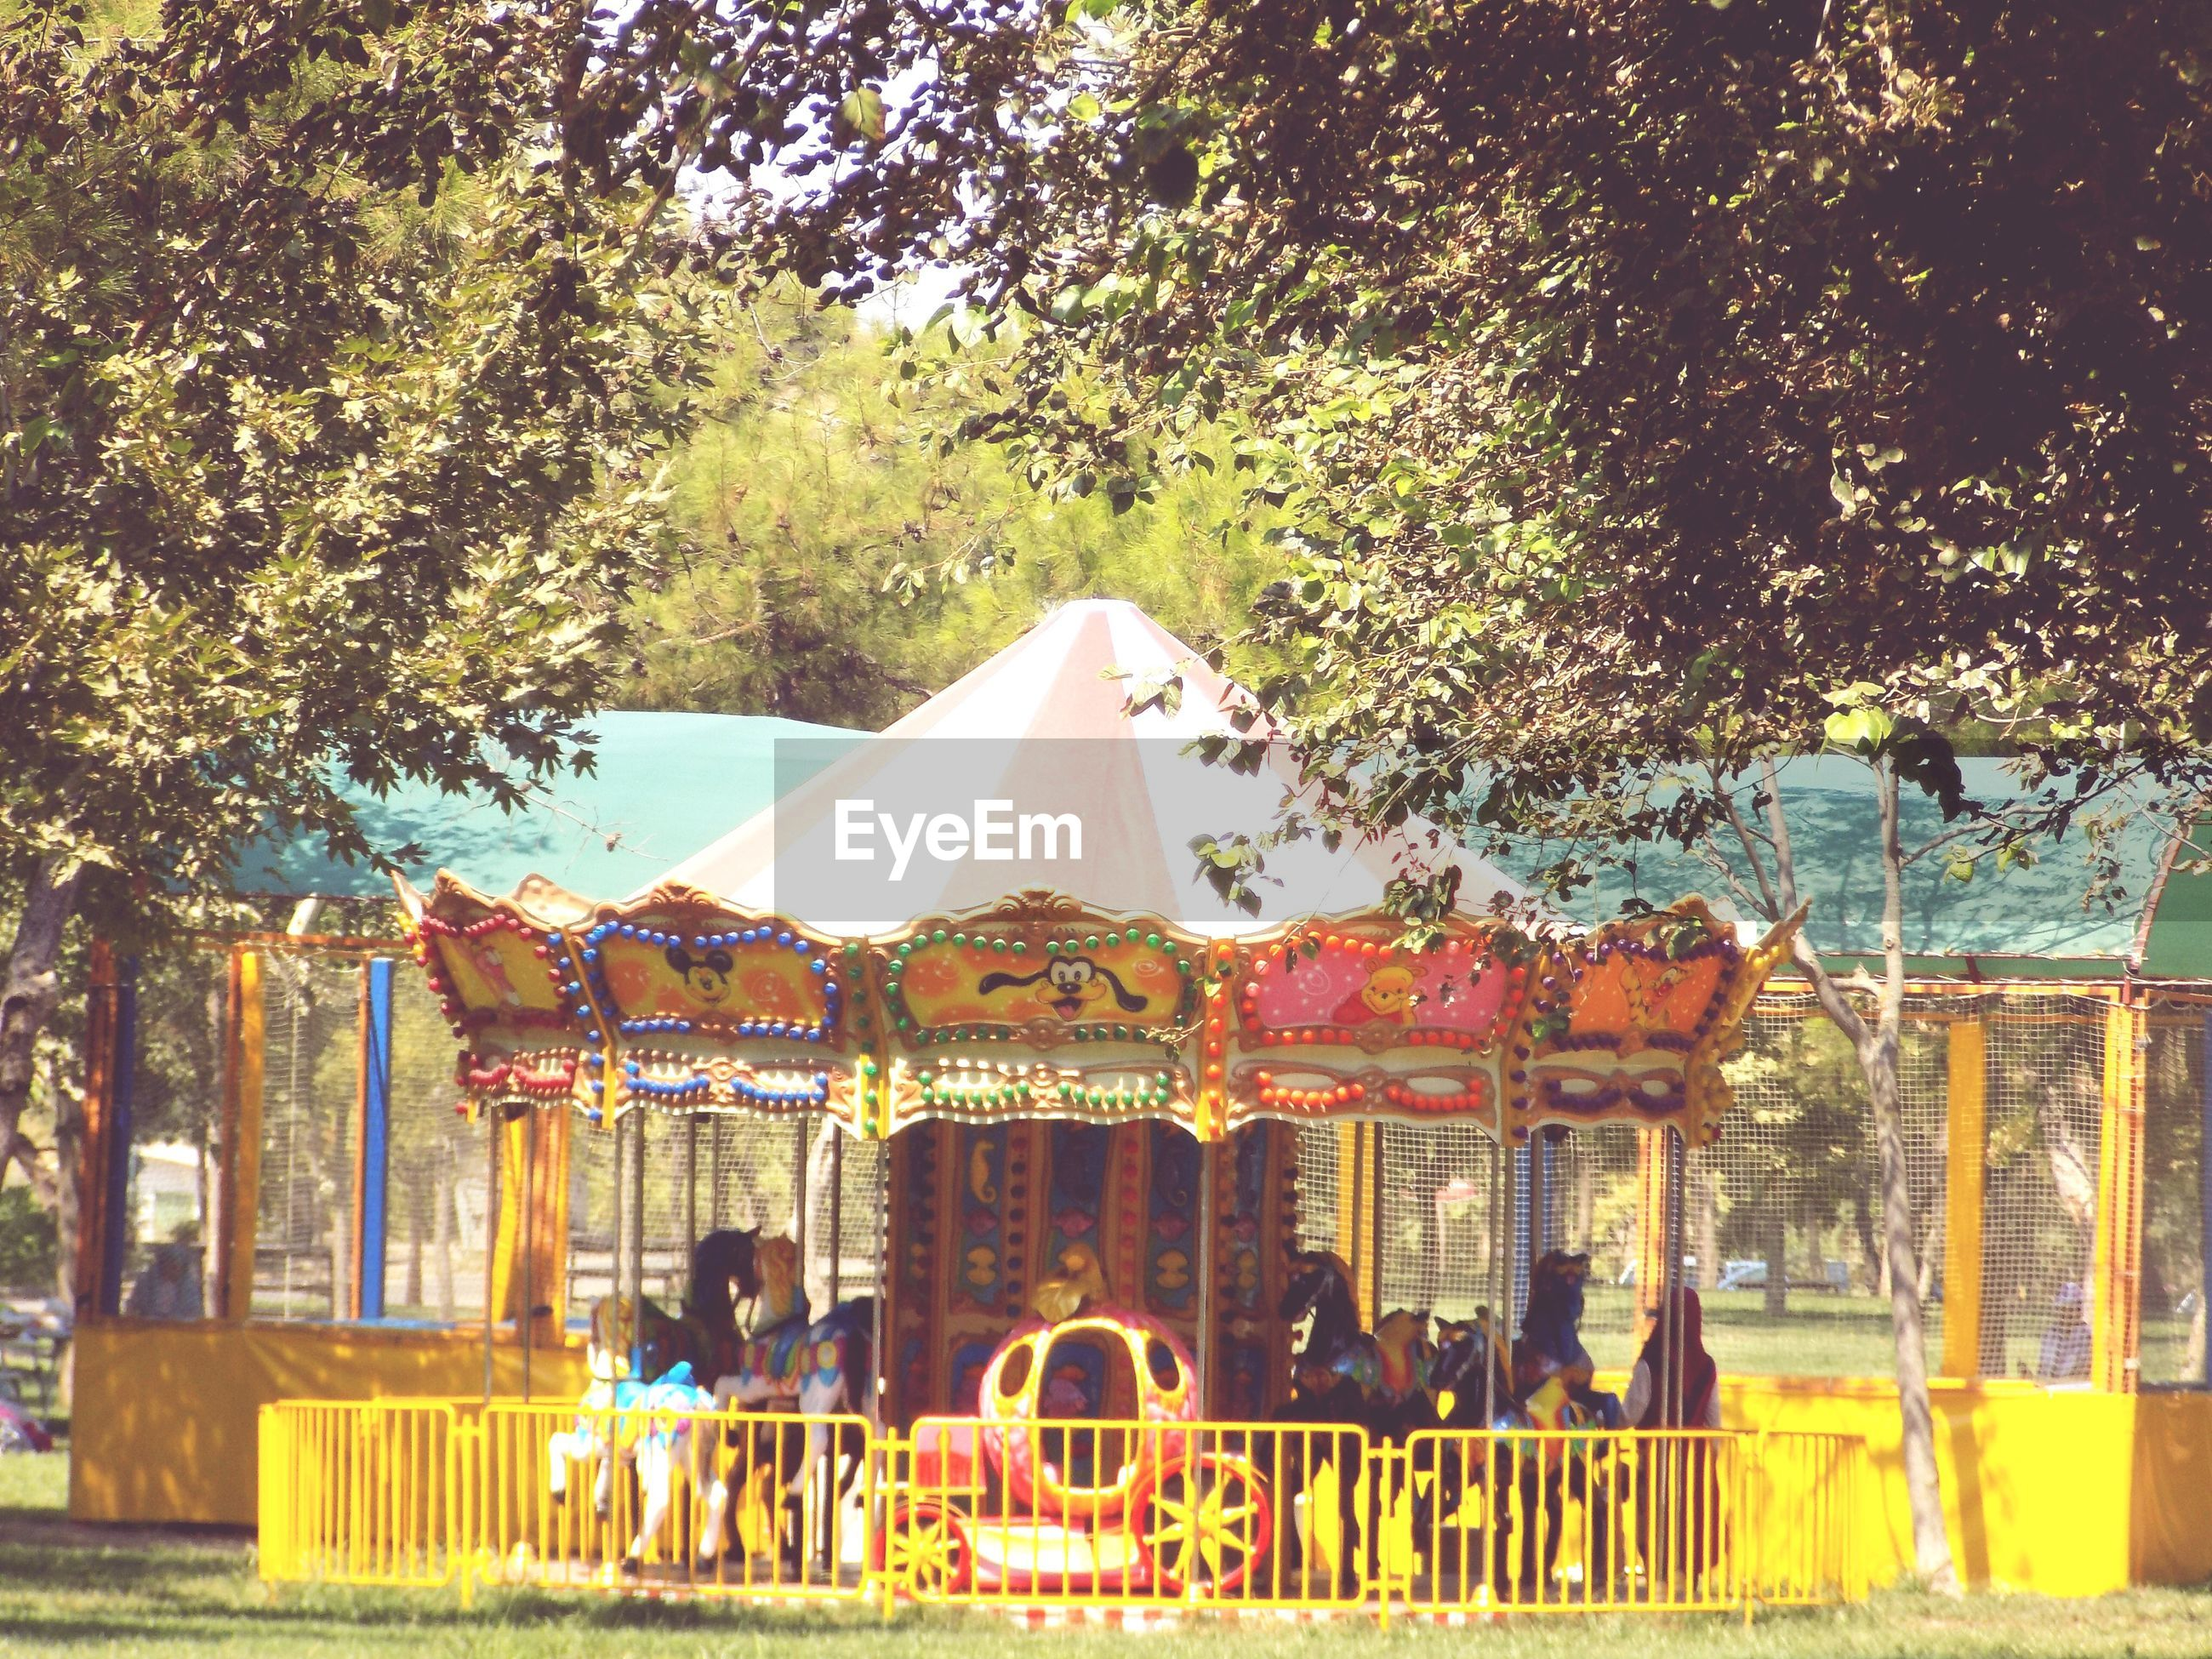 amusement park, tree, arts culture and entertainment, carousel, outdoors, day, built structure, amusement park ride, no people, merry-go-round, sky